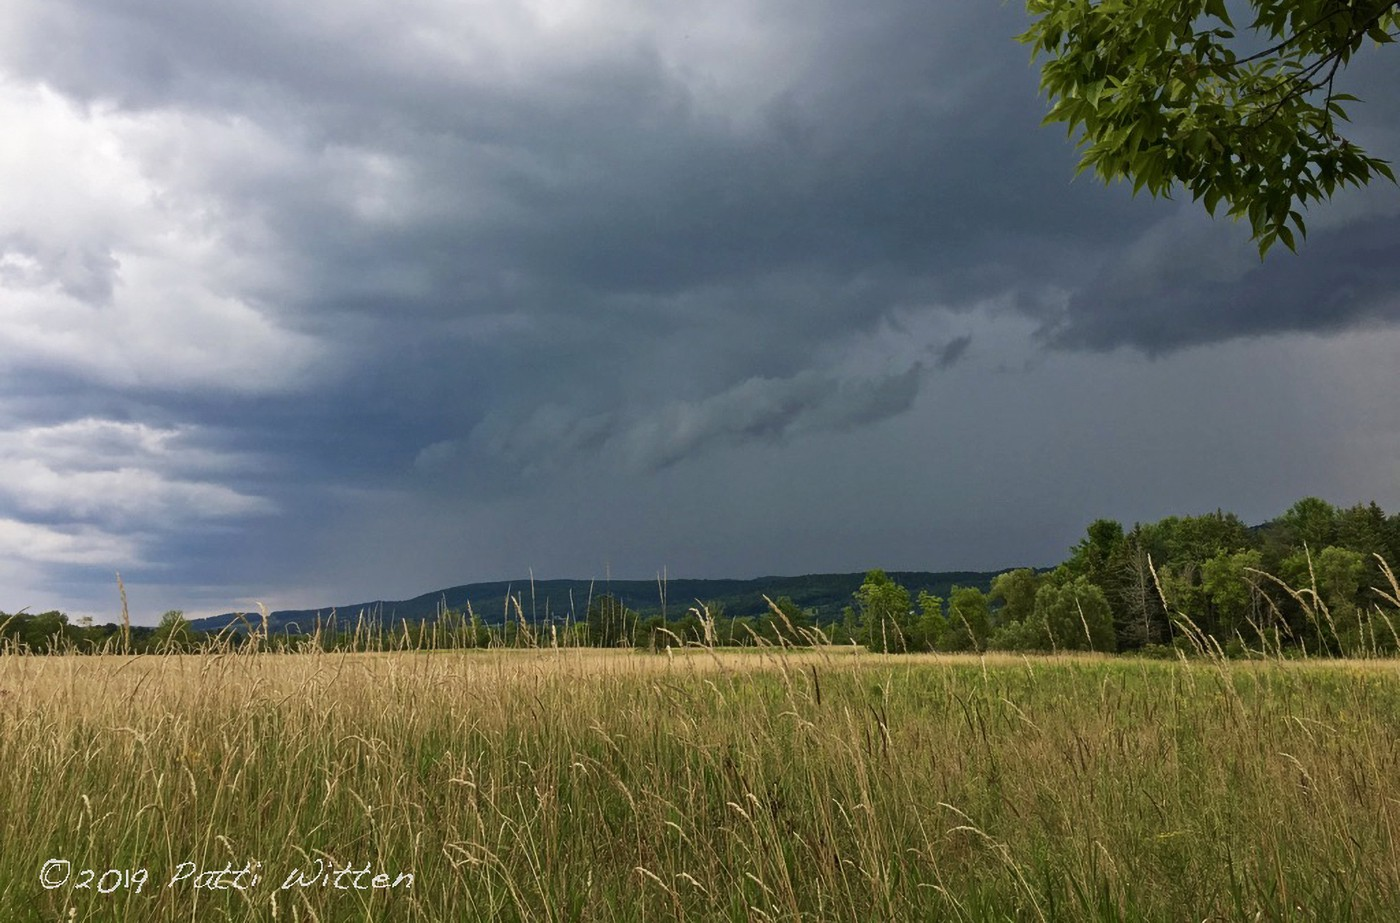 Dark clouds over a hillside and field of yellow grass.